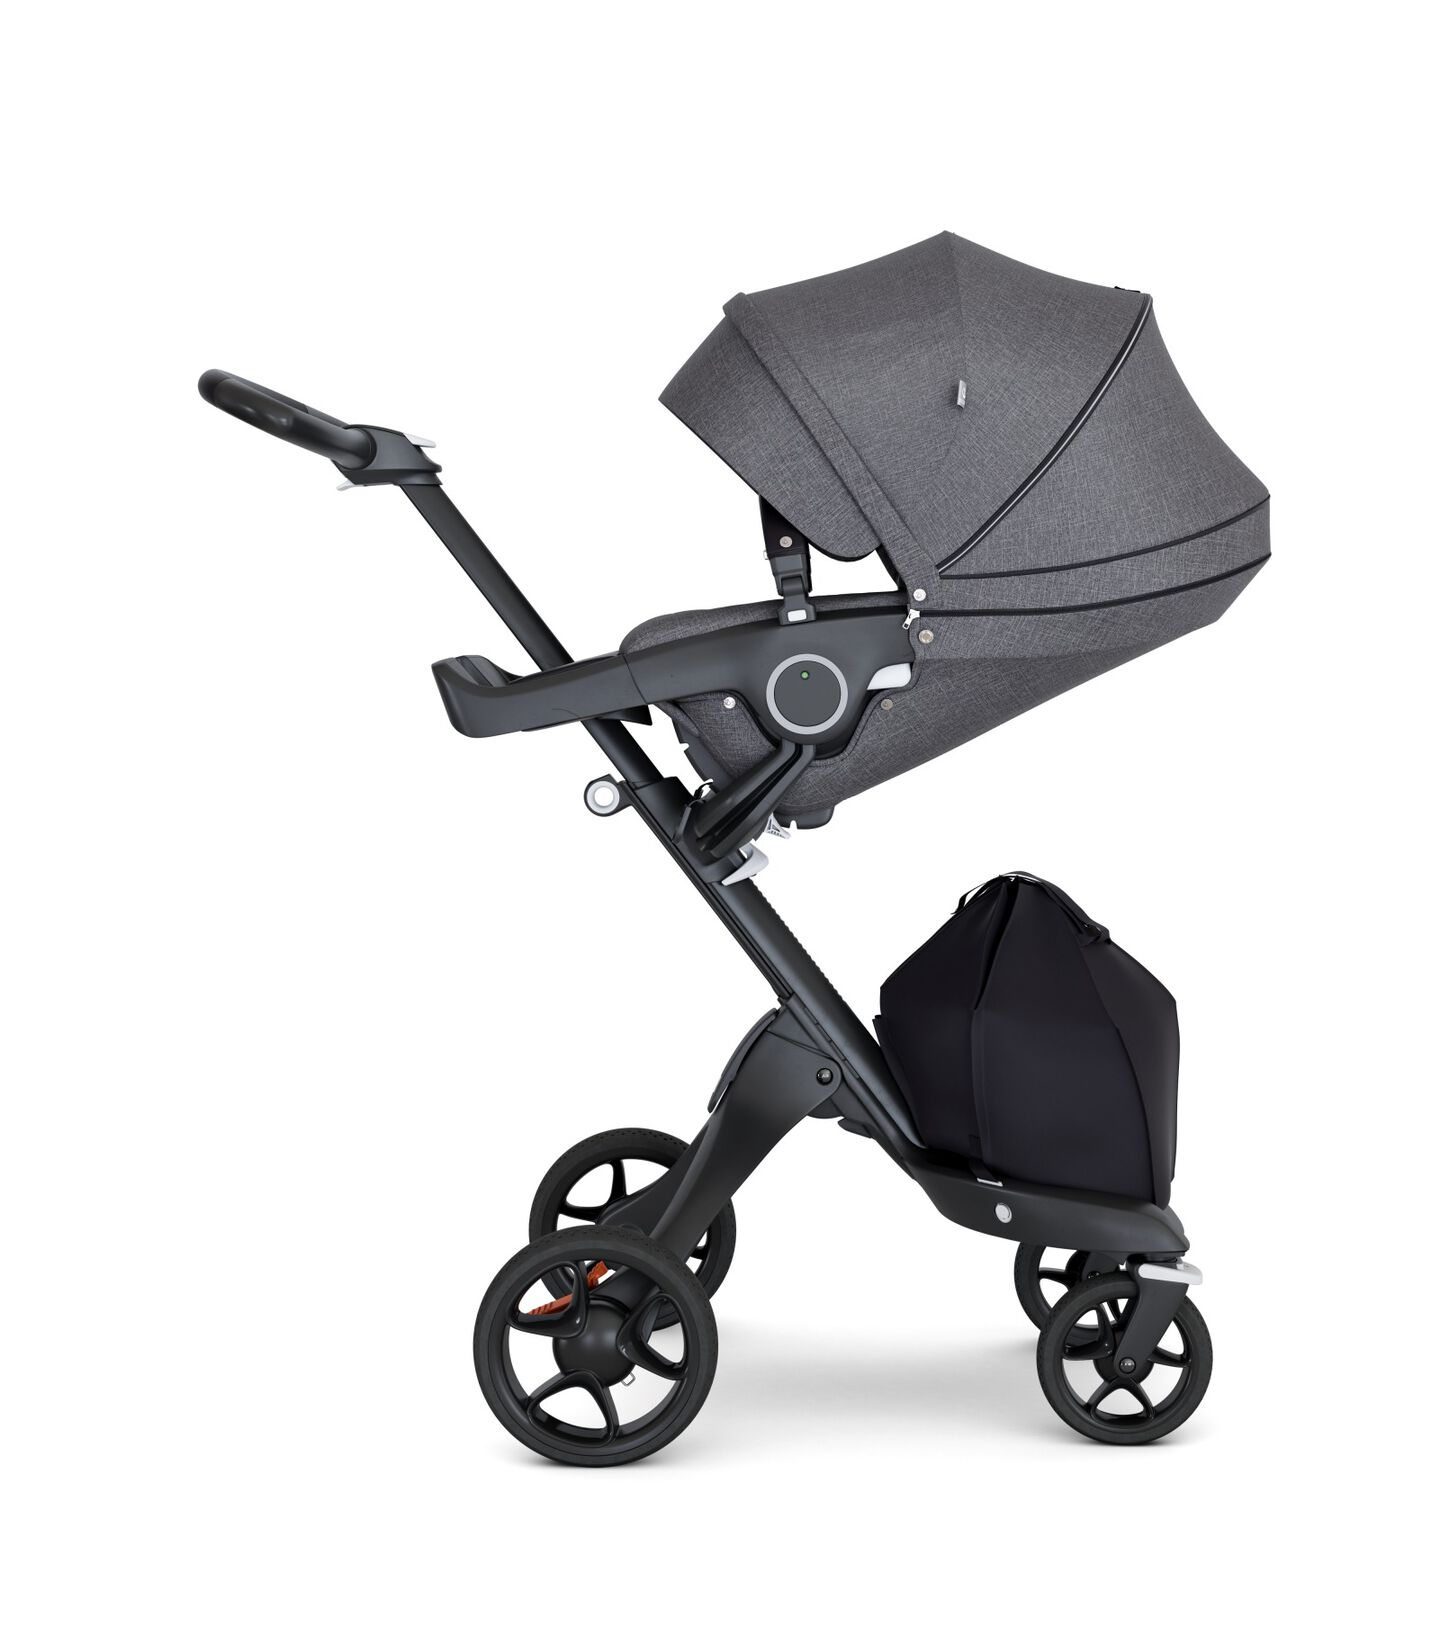 Stokke® Xplory® with Black Chassis and Leatherette Black handle. Stokke® Stroller Seat Black Melange with extended canopy.